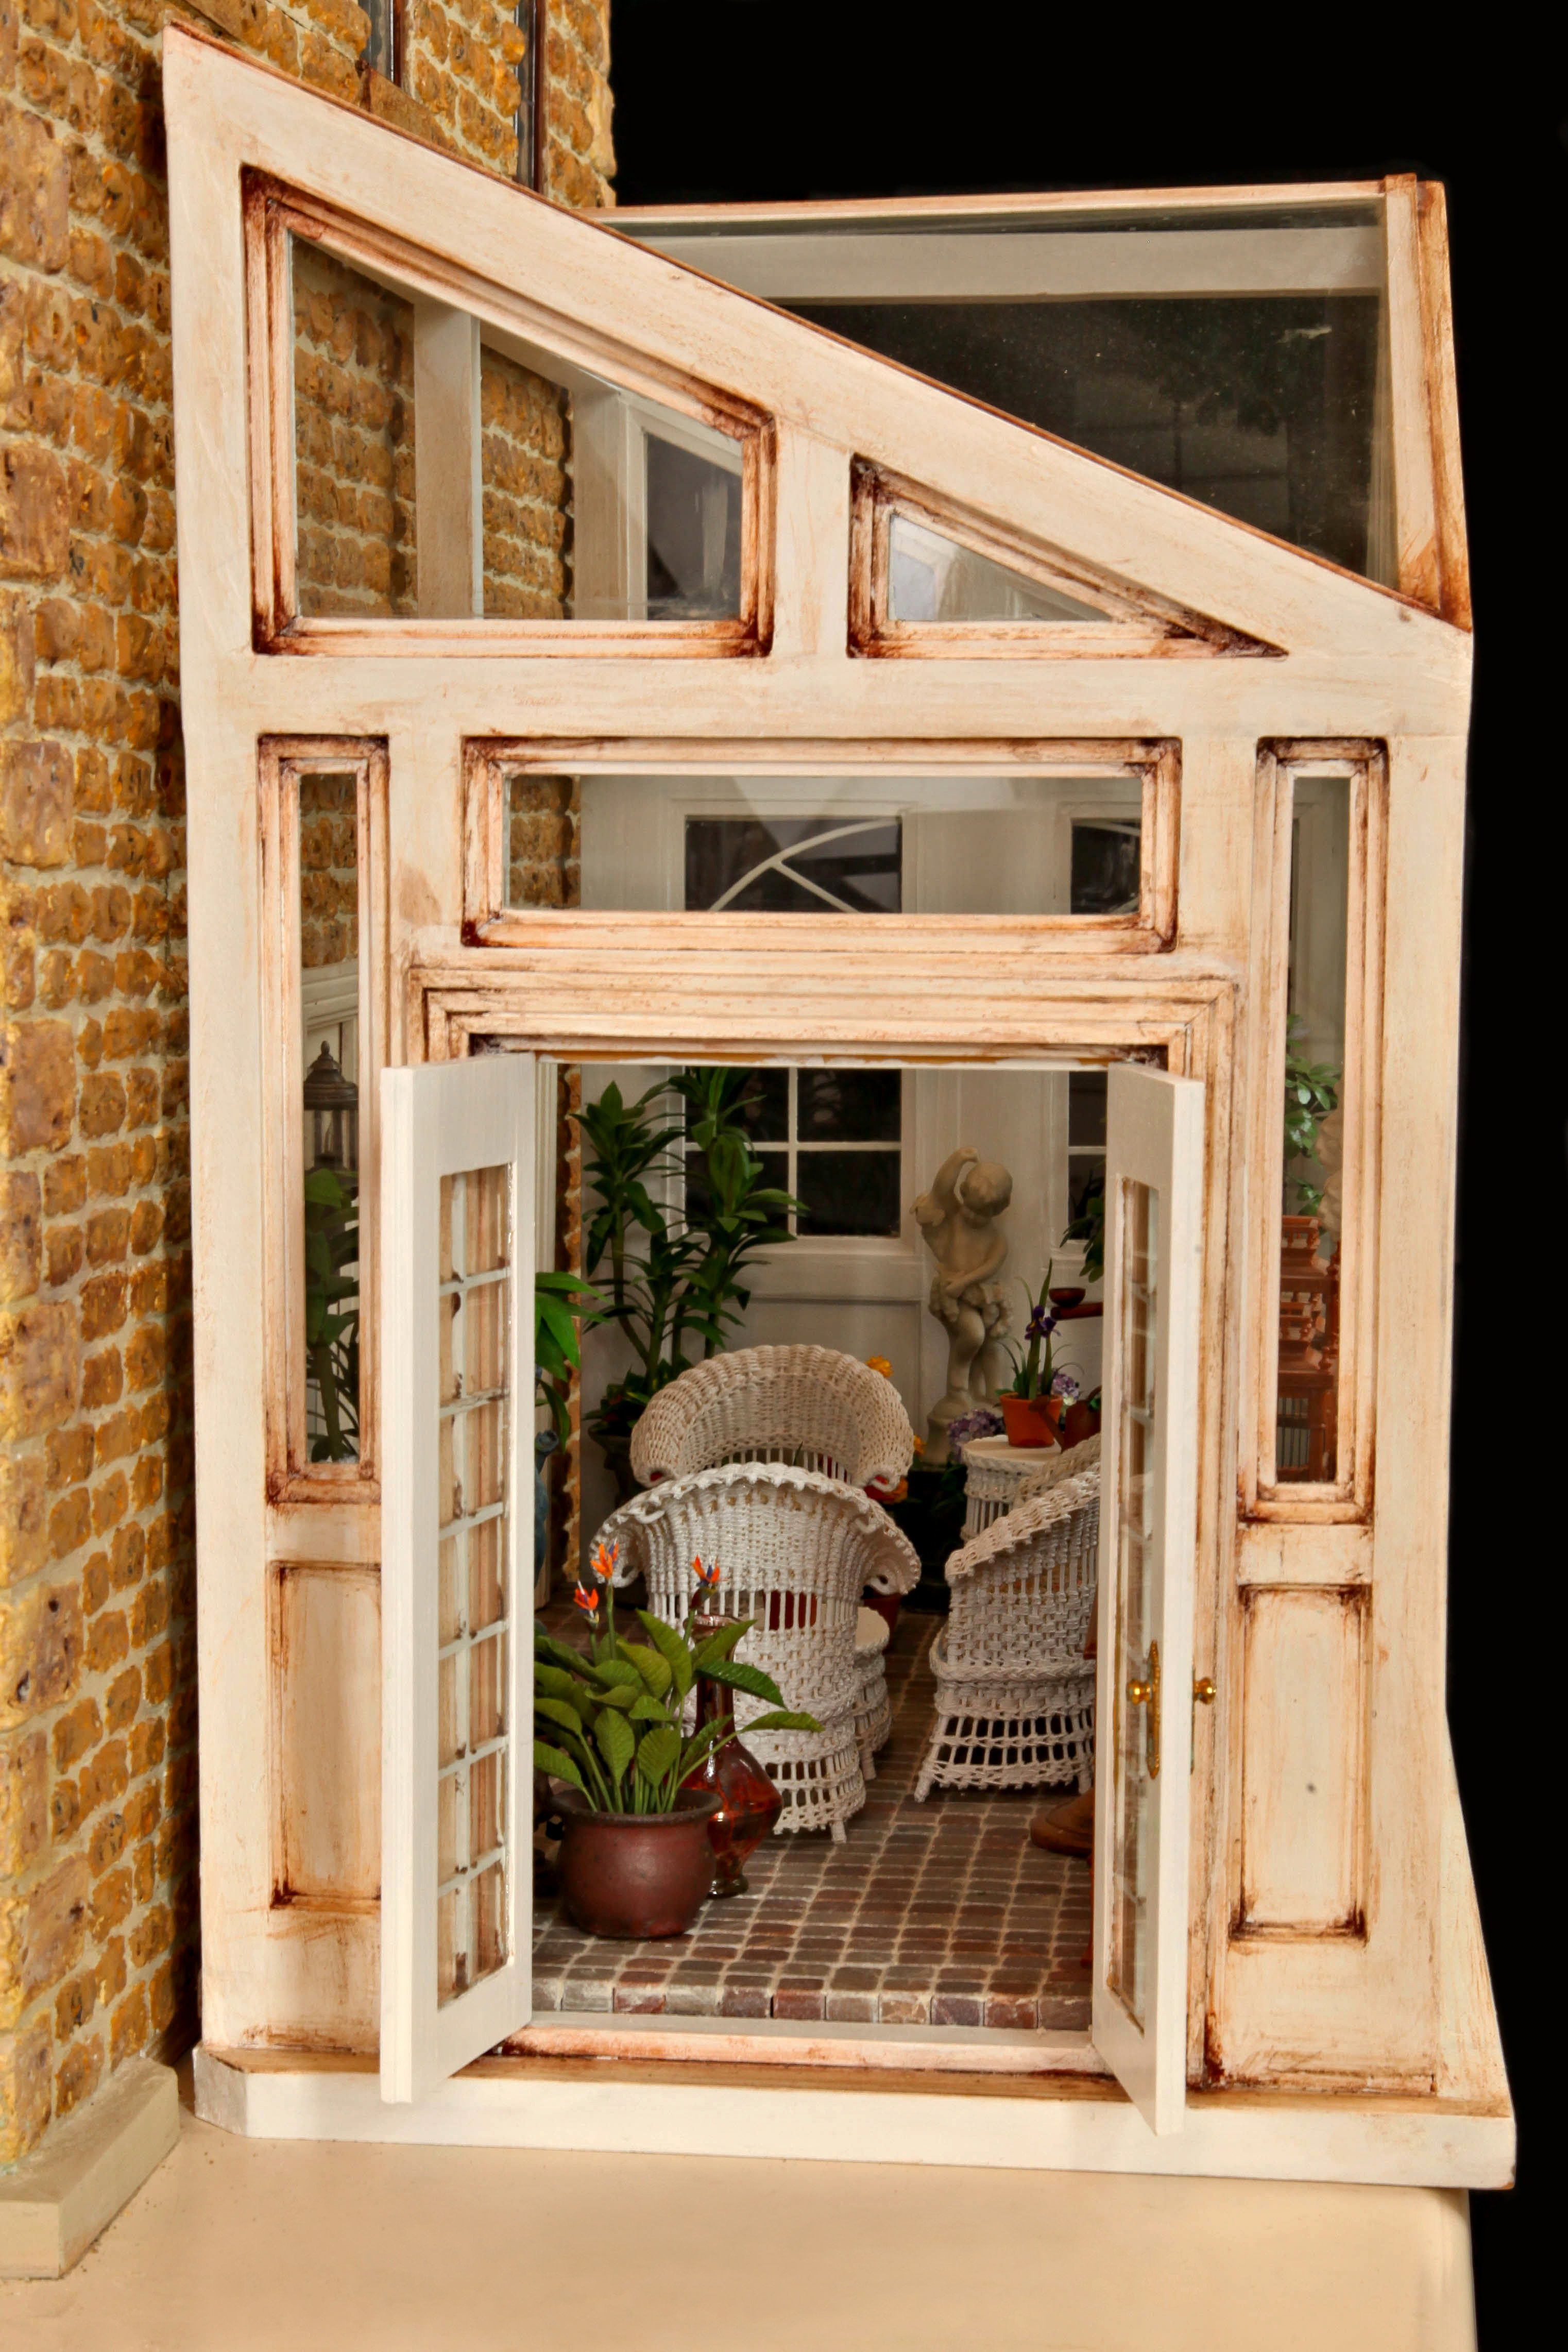 Glass Conservatory featuring wicker  by Rhea's Wicker  in Miniature